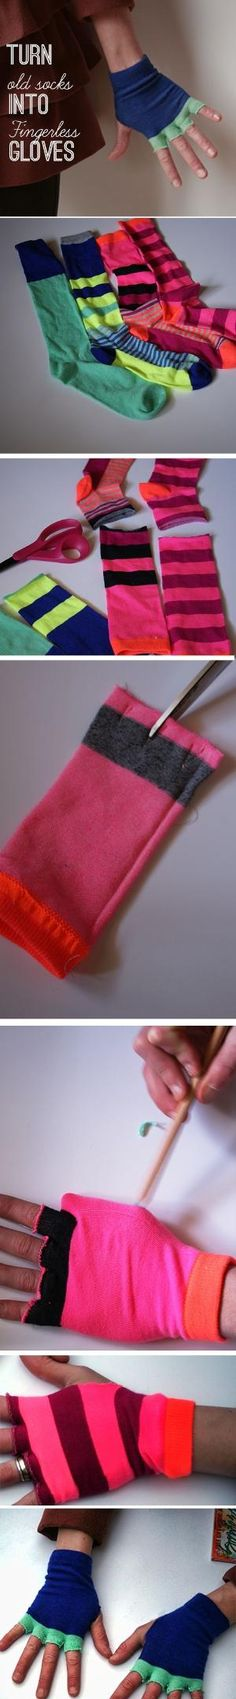 Upcycle old socks to fingerless gloves in this EASY diy @savedbyloves by Lovemeiris